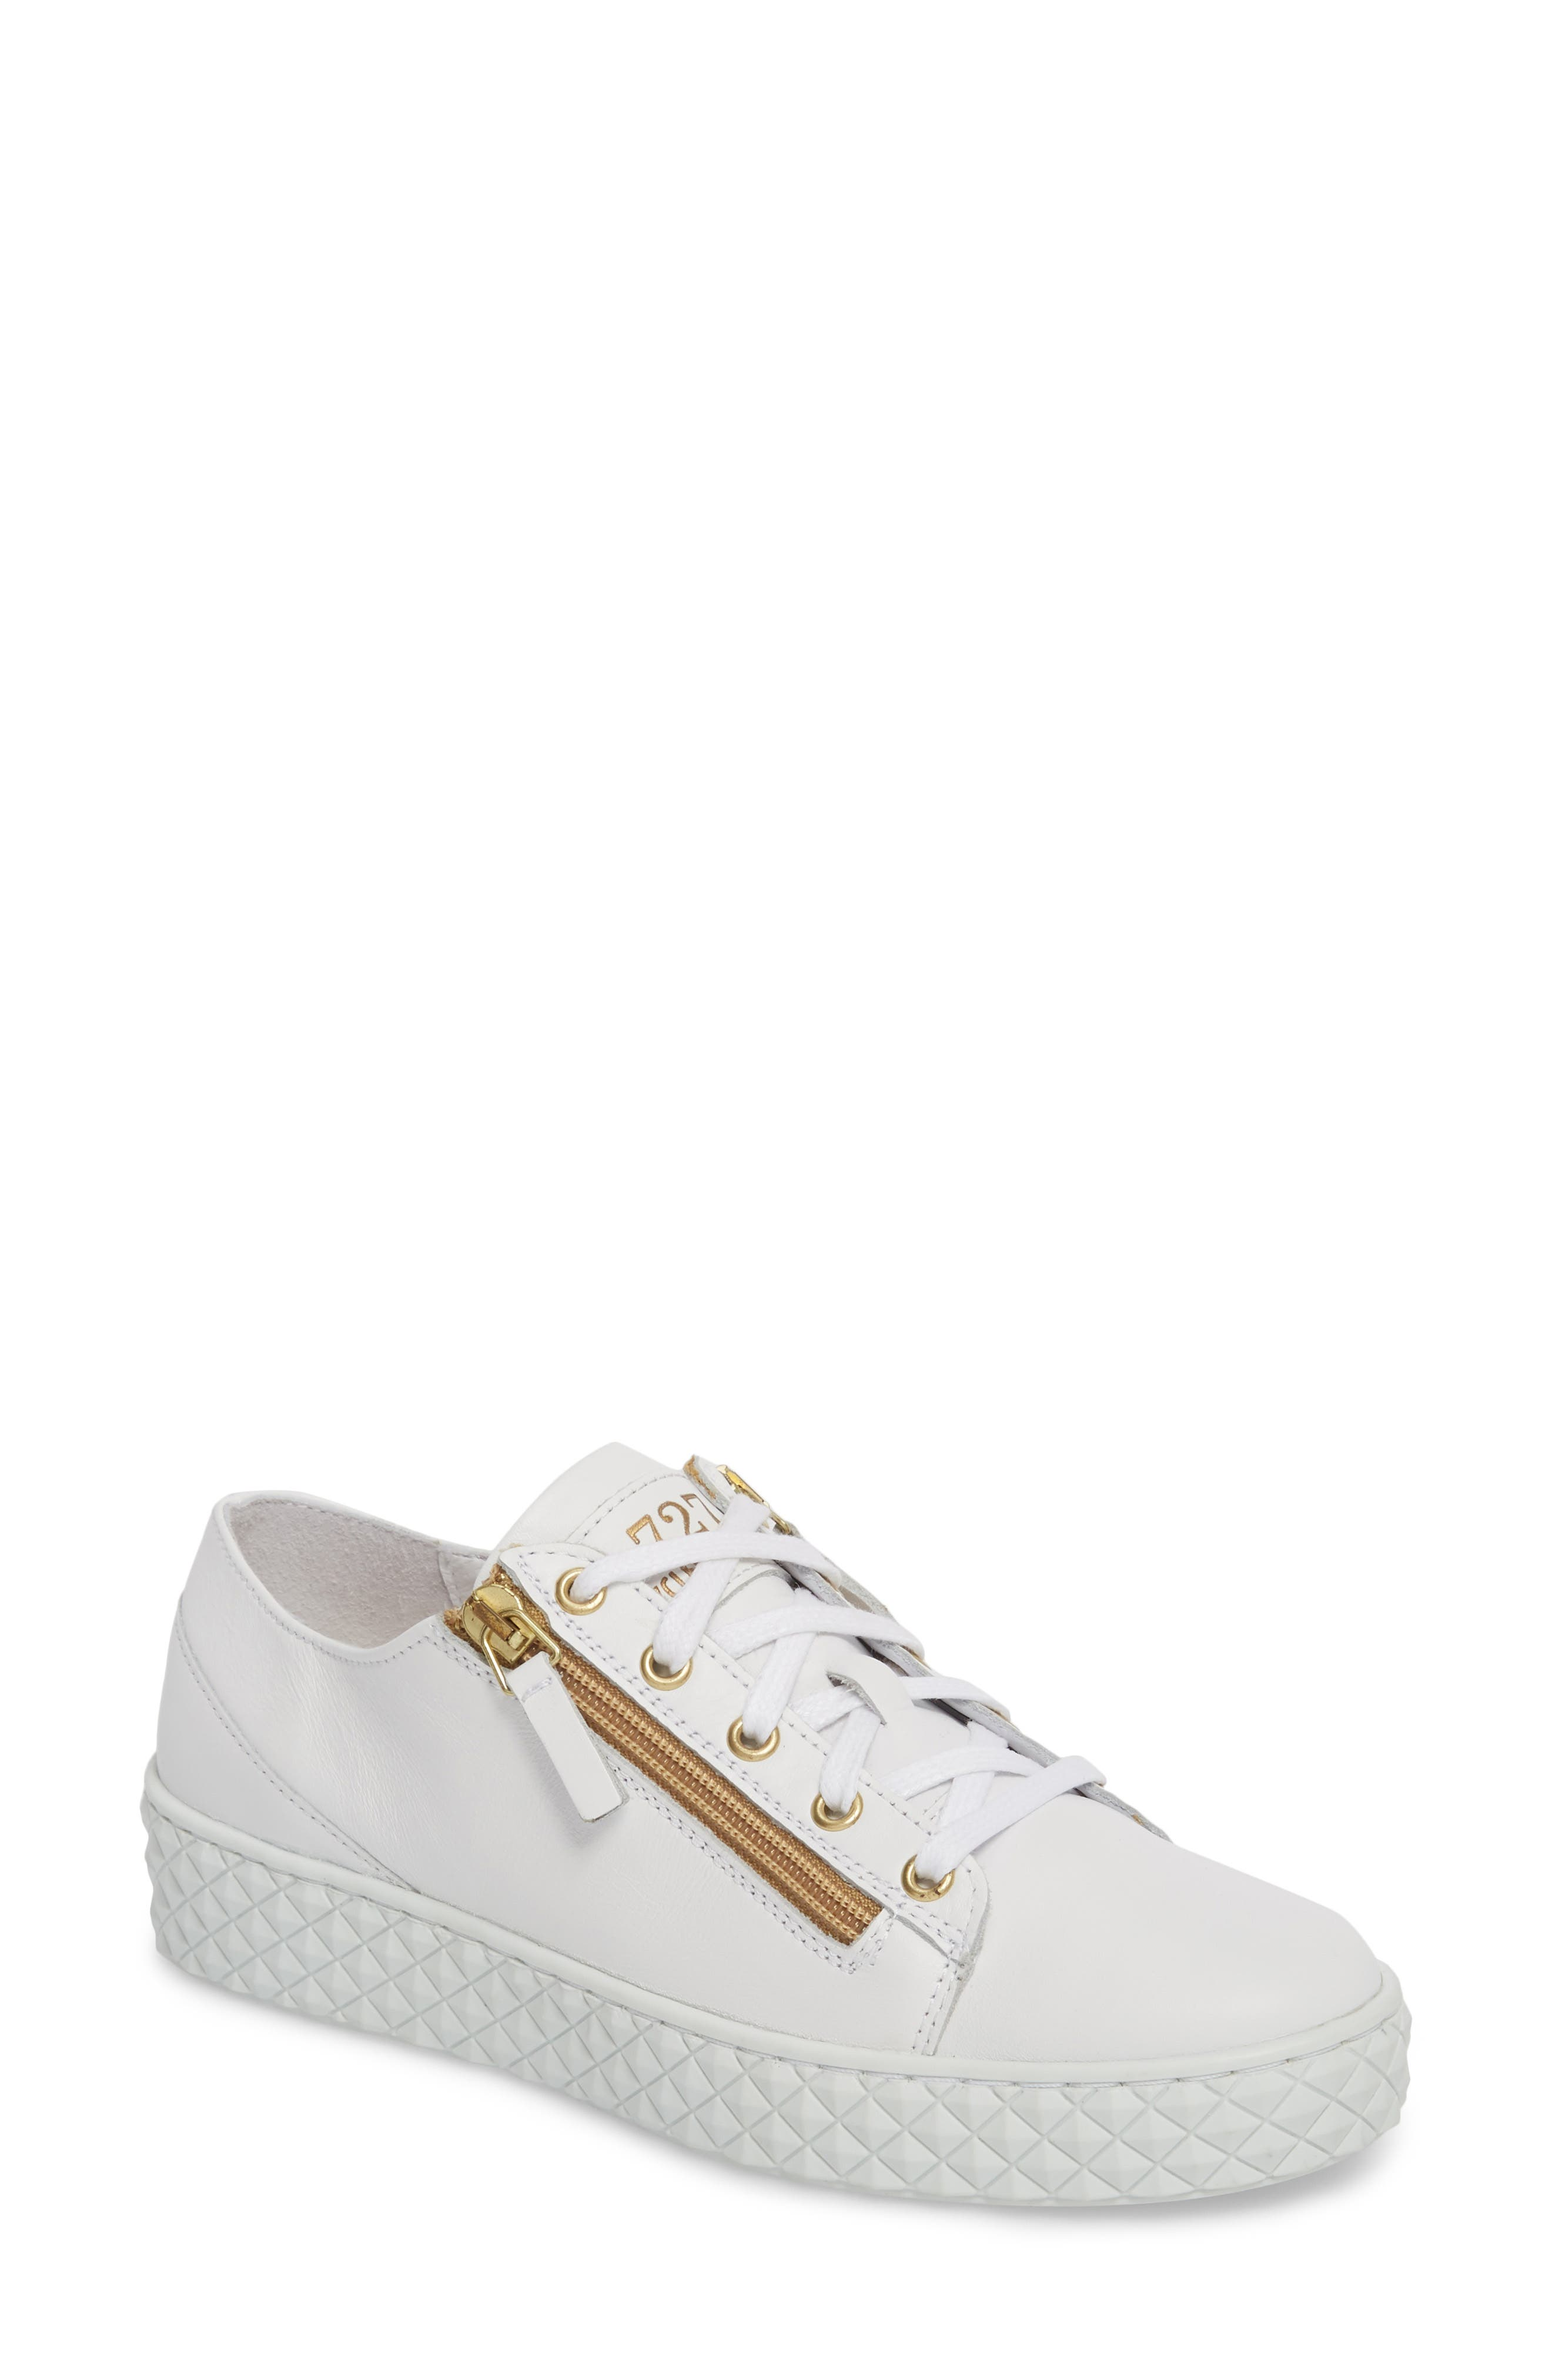 Mira Side Zip Low Top Sneaker,                         Main,                         color, Optic White/ Gold Leather